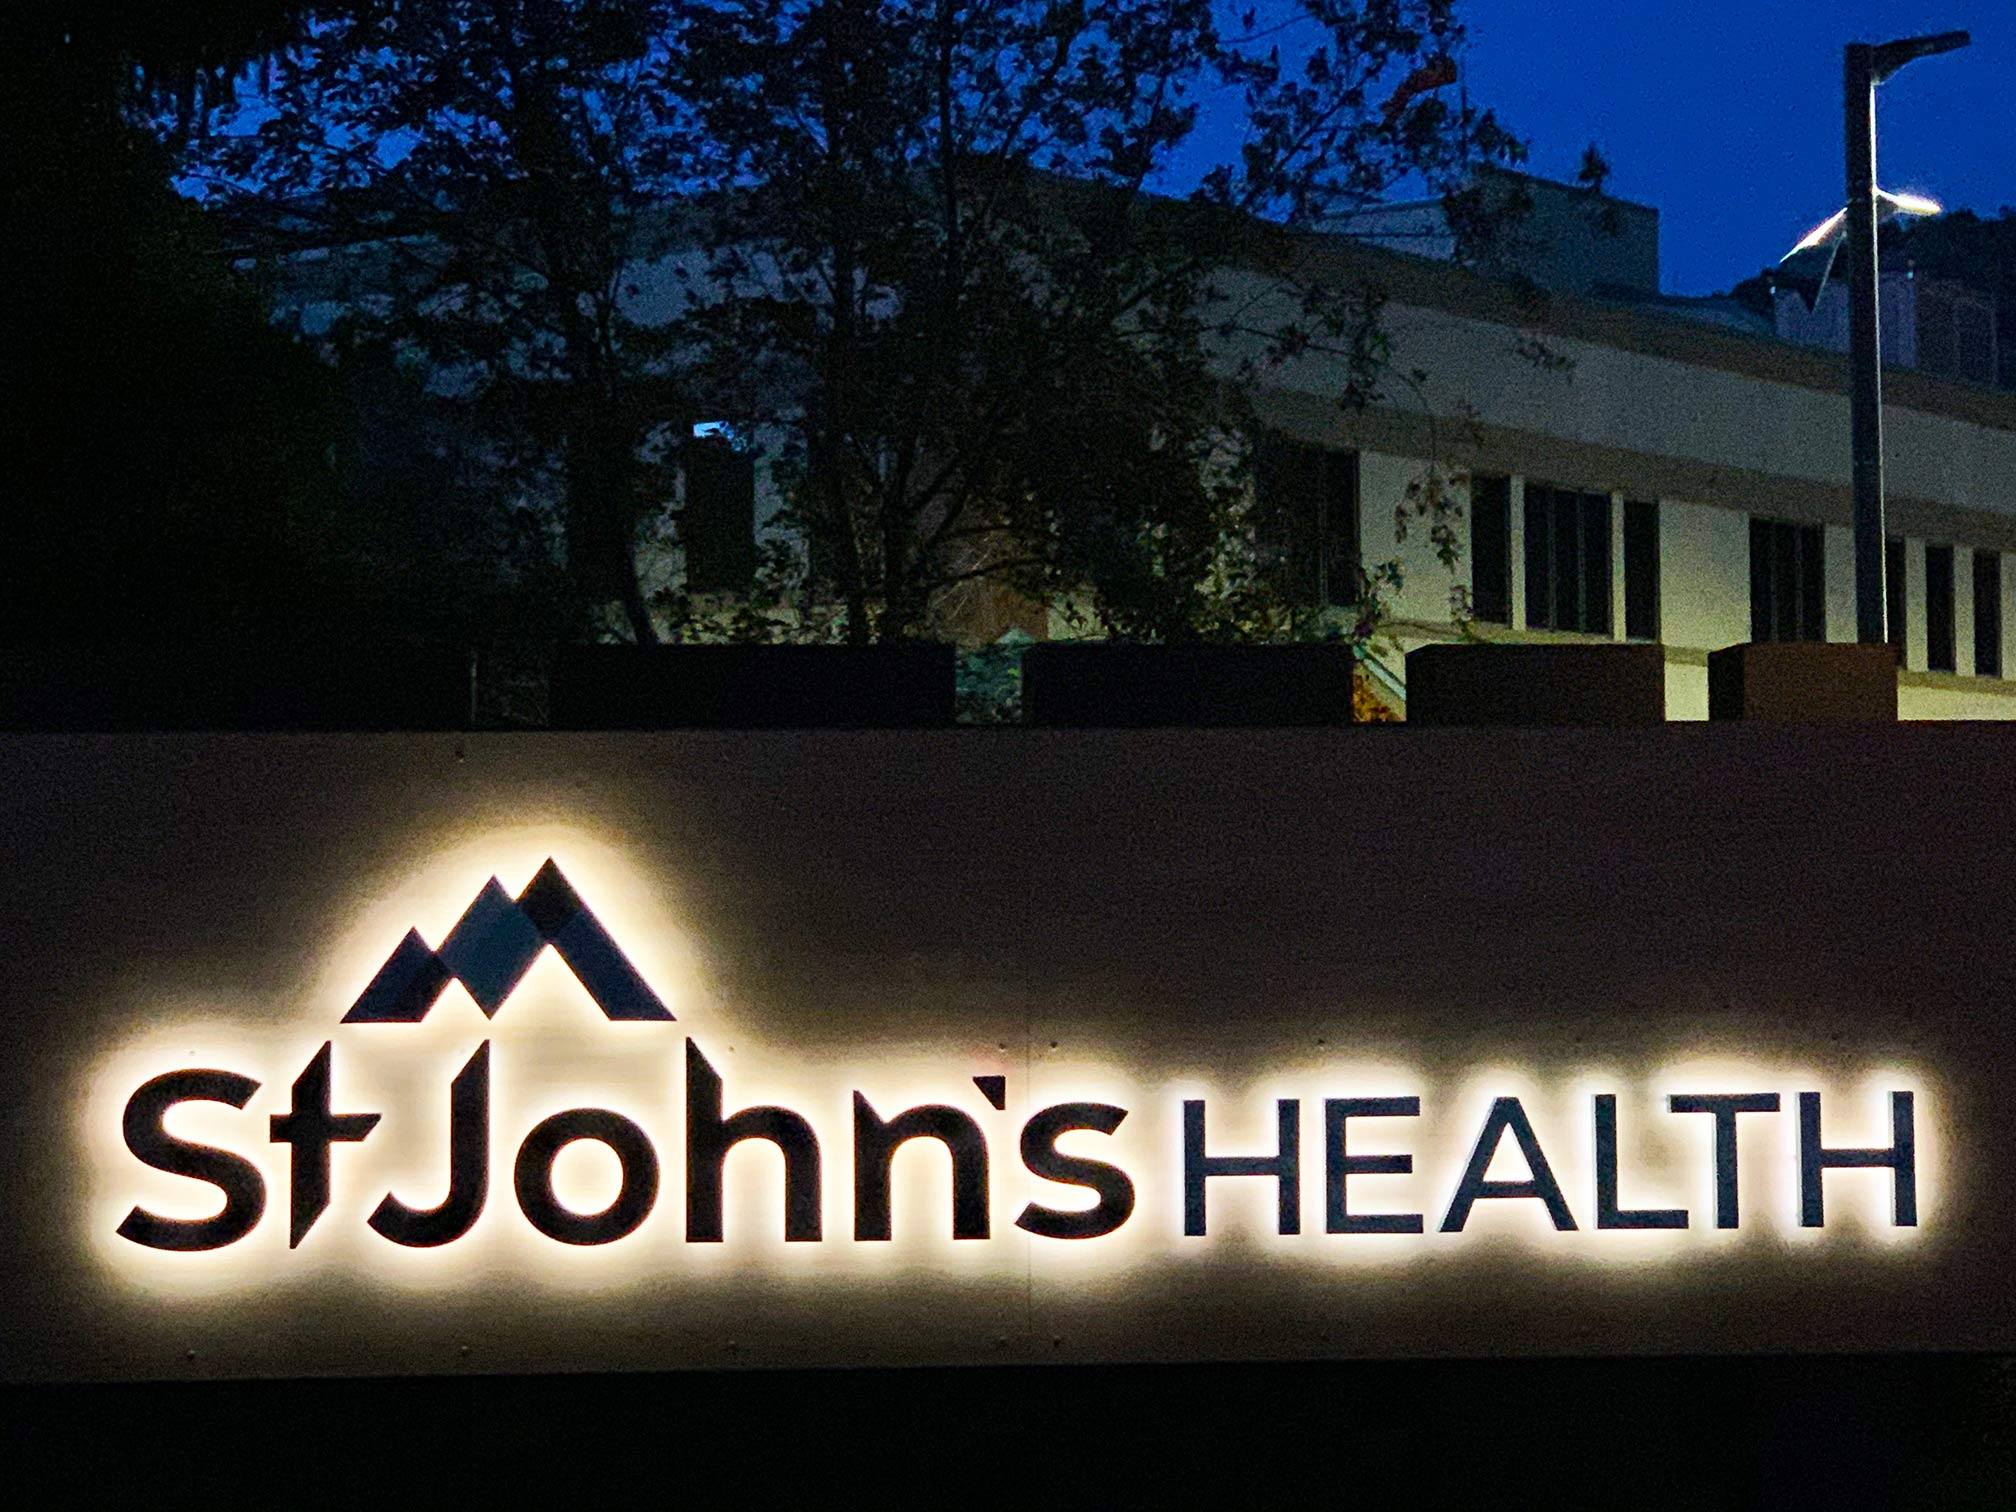 More Honors for St. John's Health